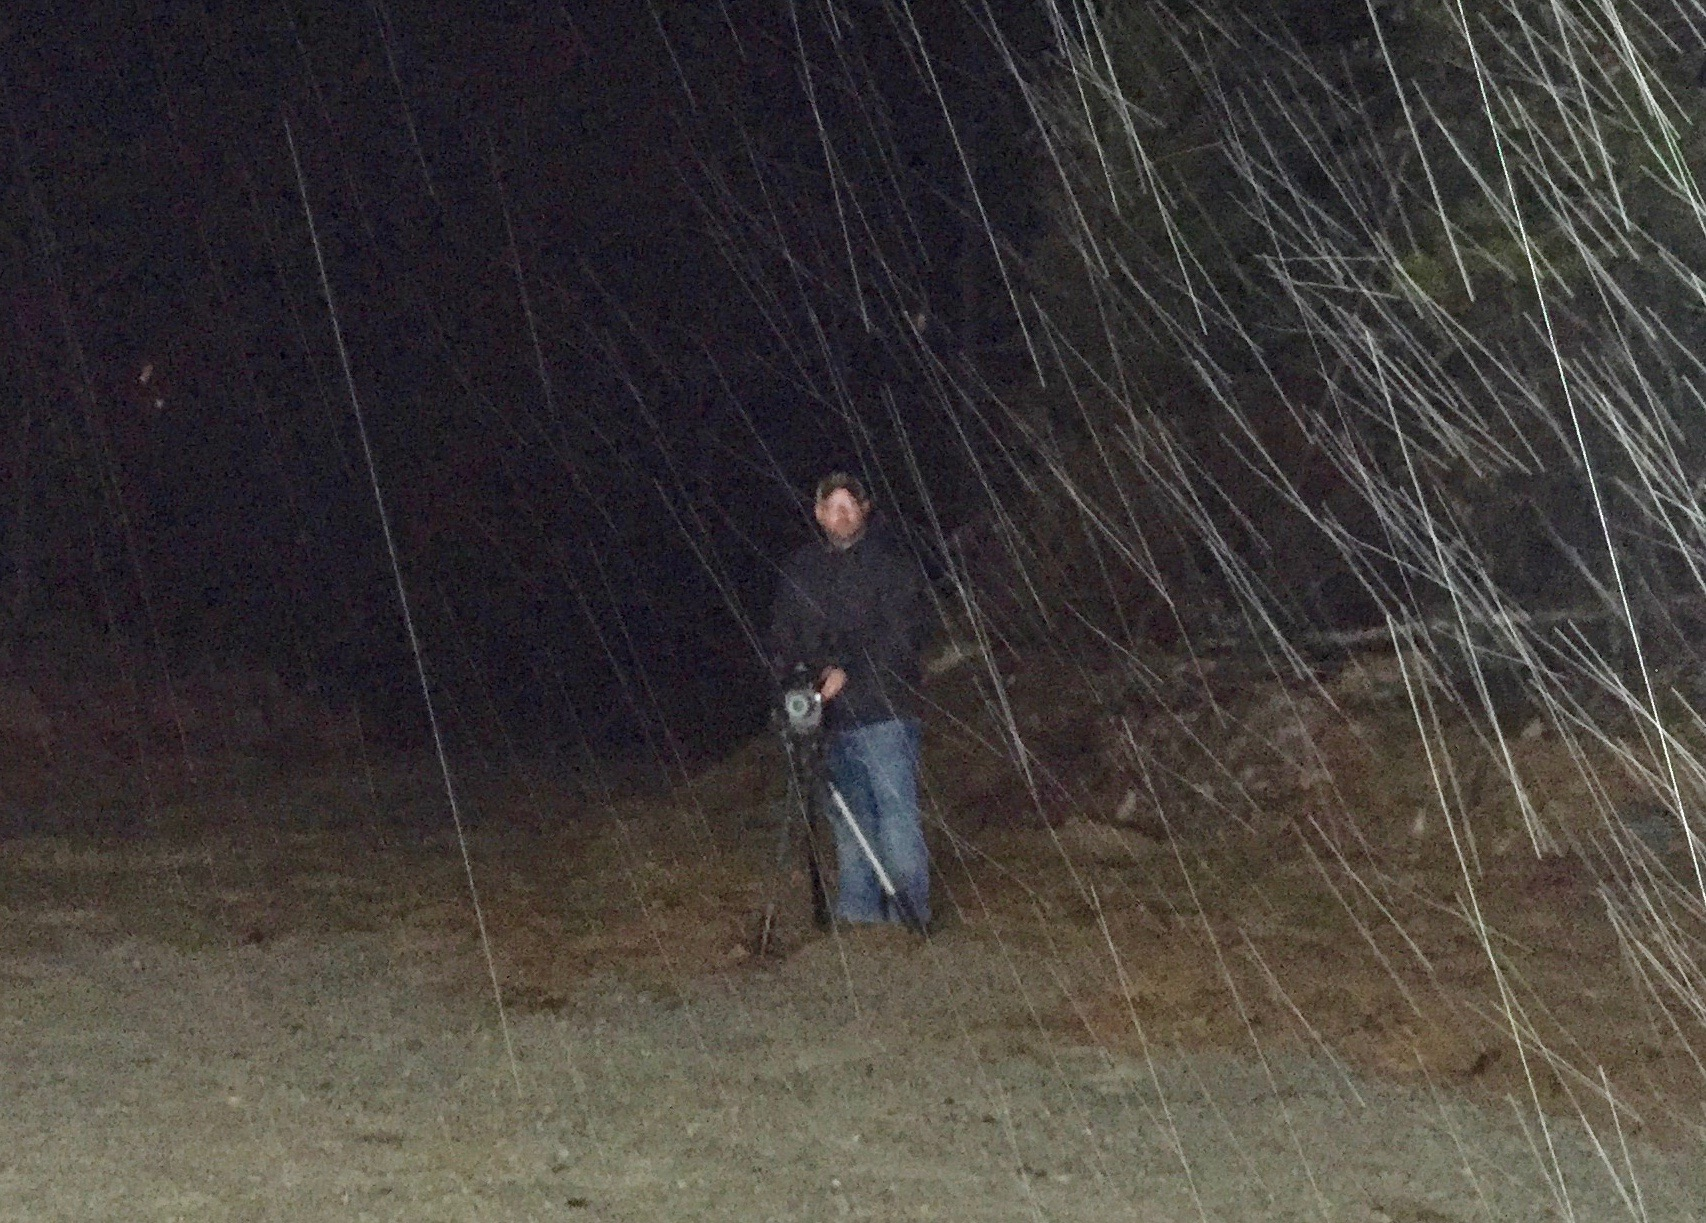 Had a bit of rain Friday night. The filming must go on! We finished this segment around midnight.